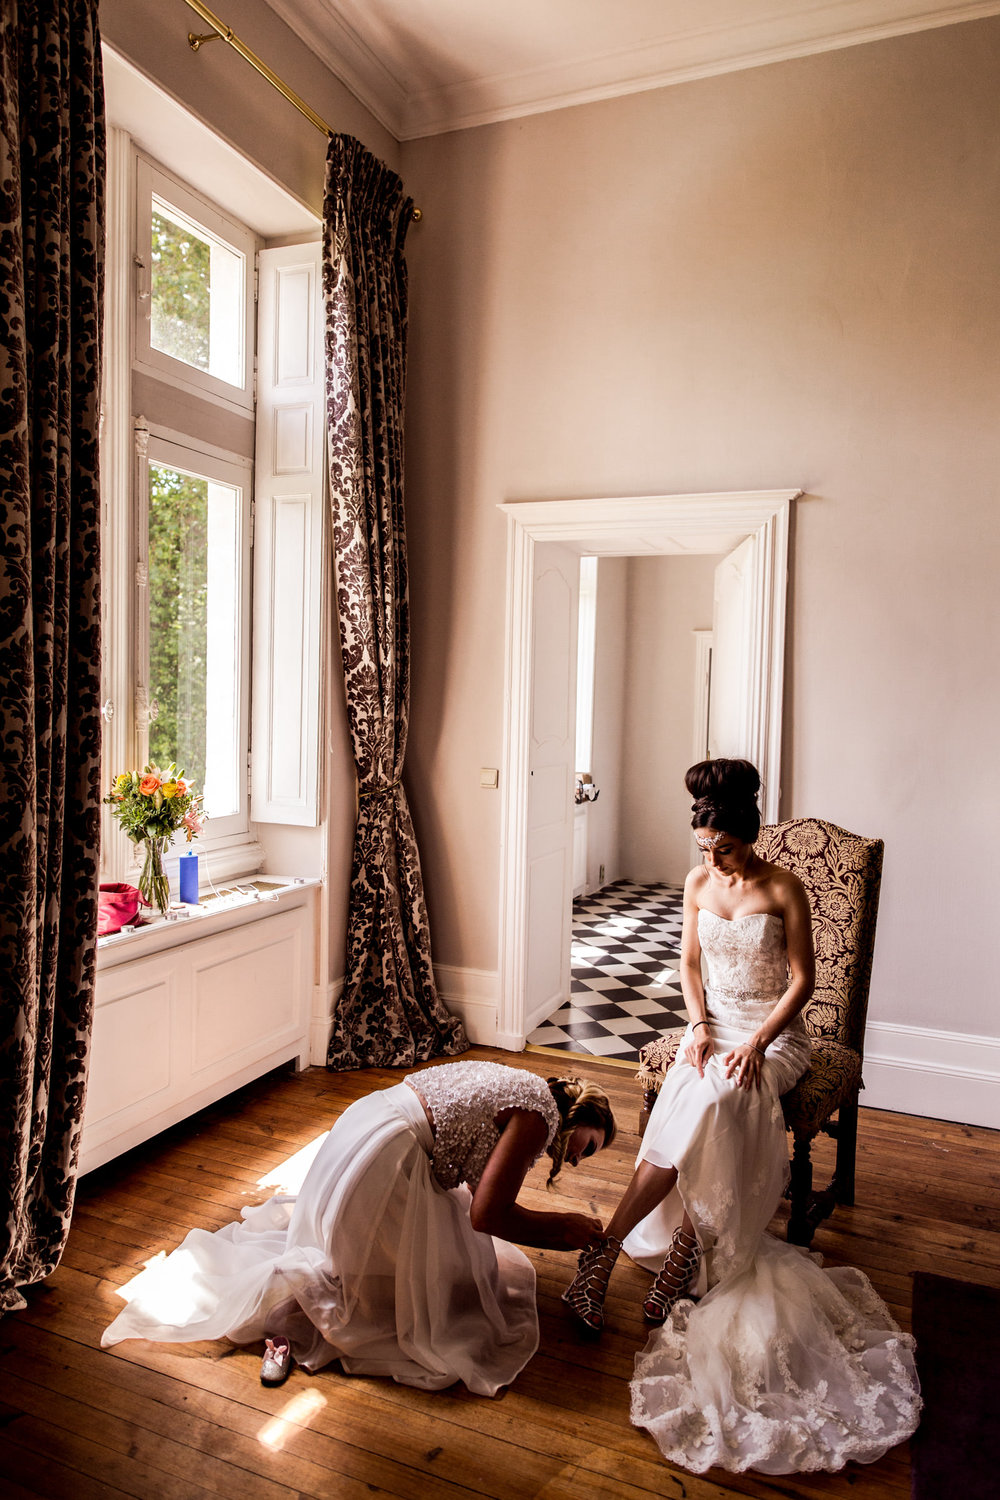 Uk Wedding photographers working at chateau de lisse in gascony 024.jpg